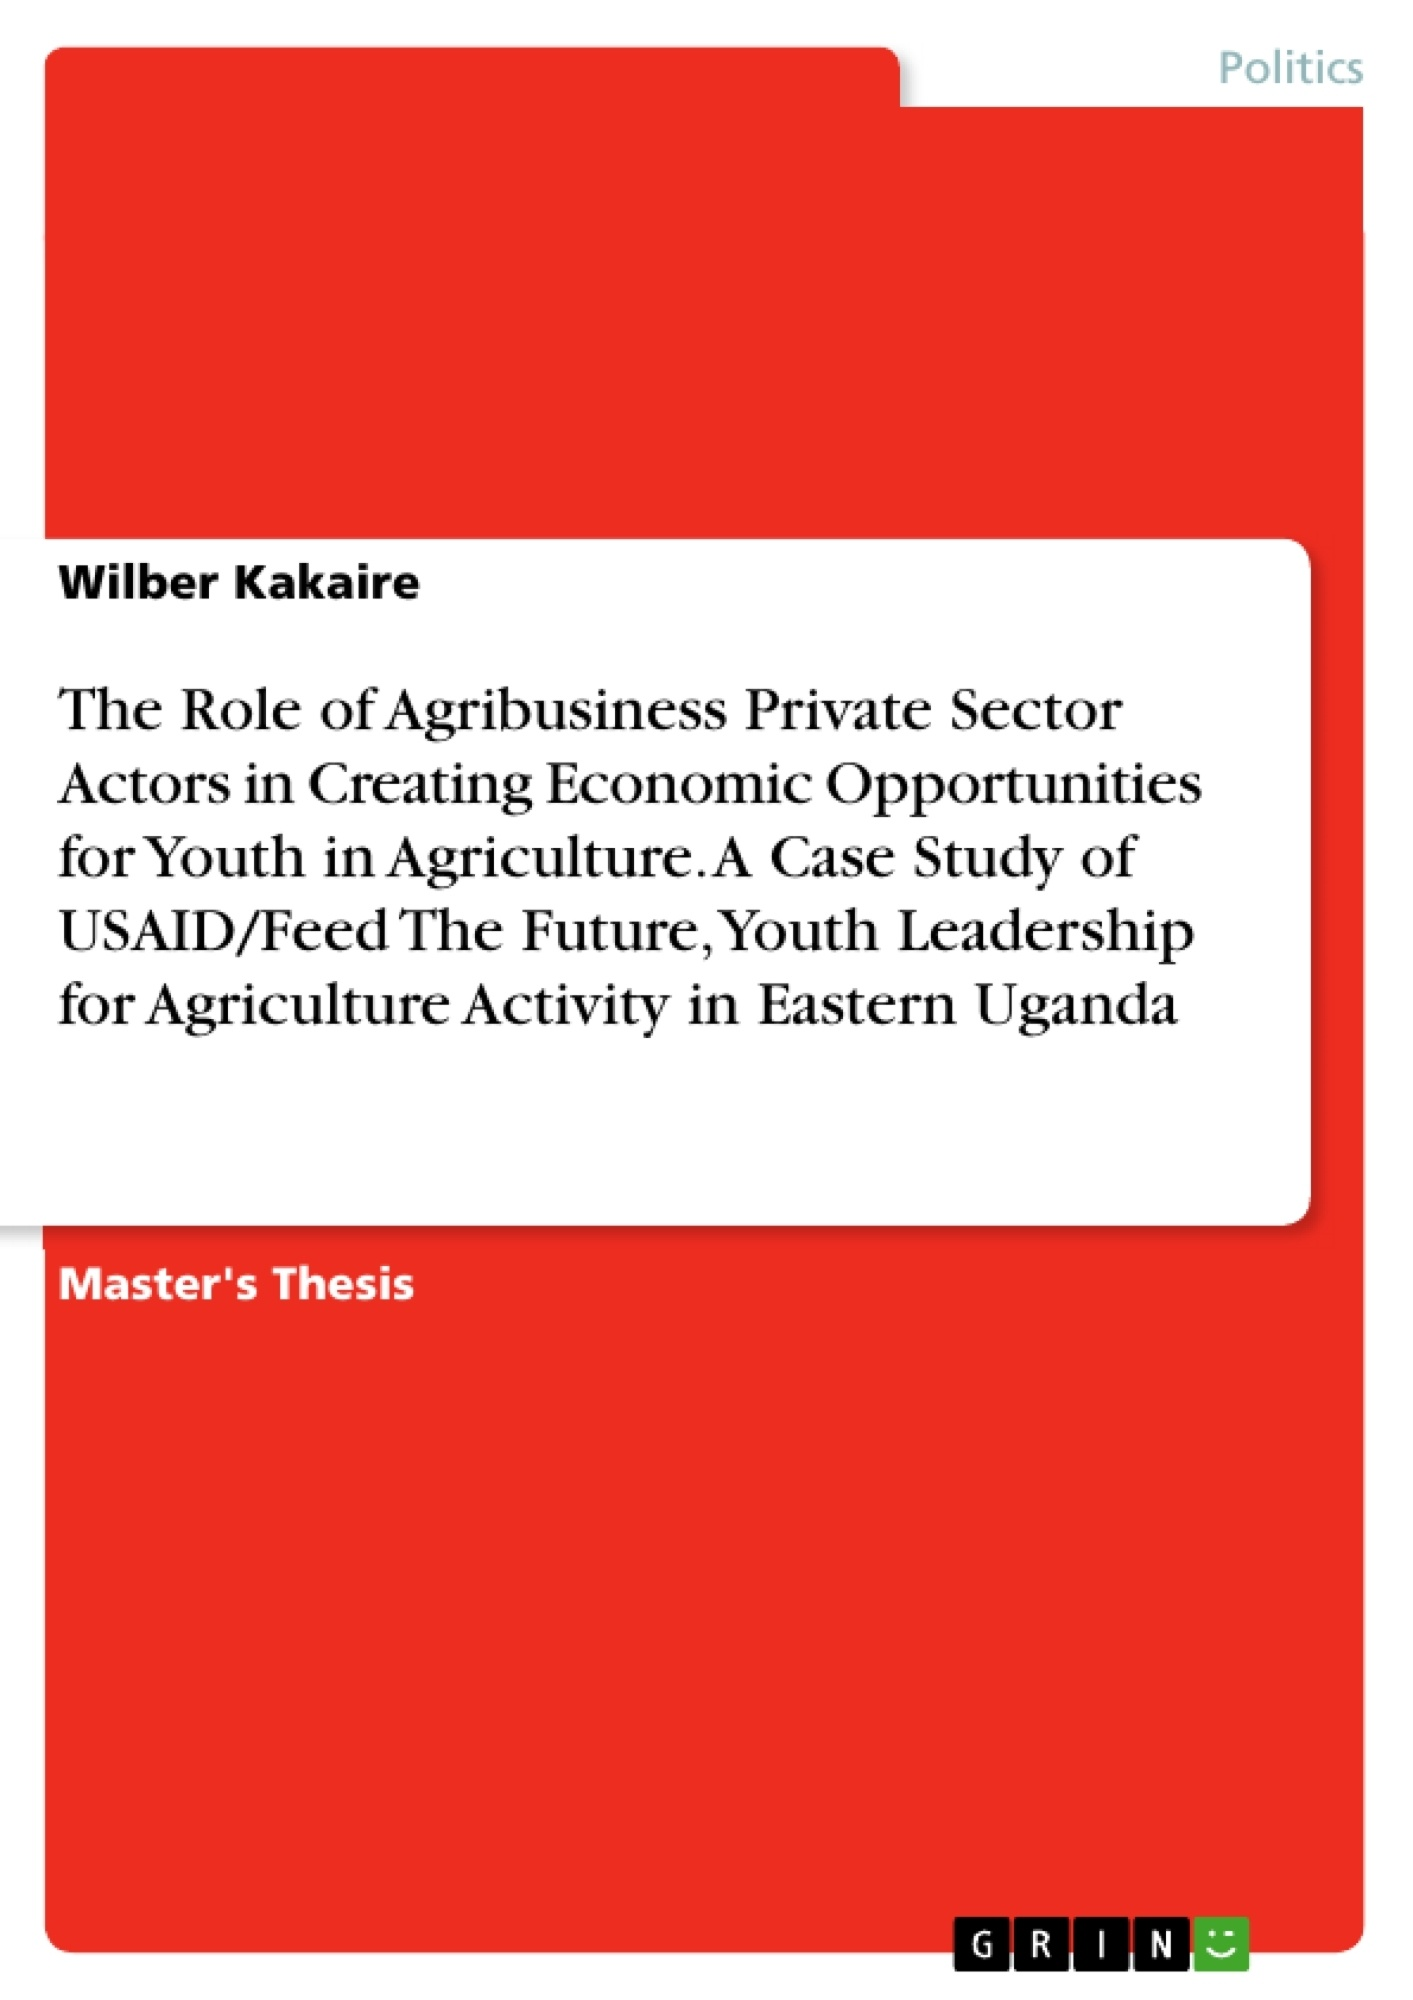 Title: The Role of Agribusiness Private Sector Actors in Creating Economic Opportunities for Youth in Agriculture. A Case Study of USAID/Feed The Future, Youth Leadership for Agriculture Activity in Eastern Uganda